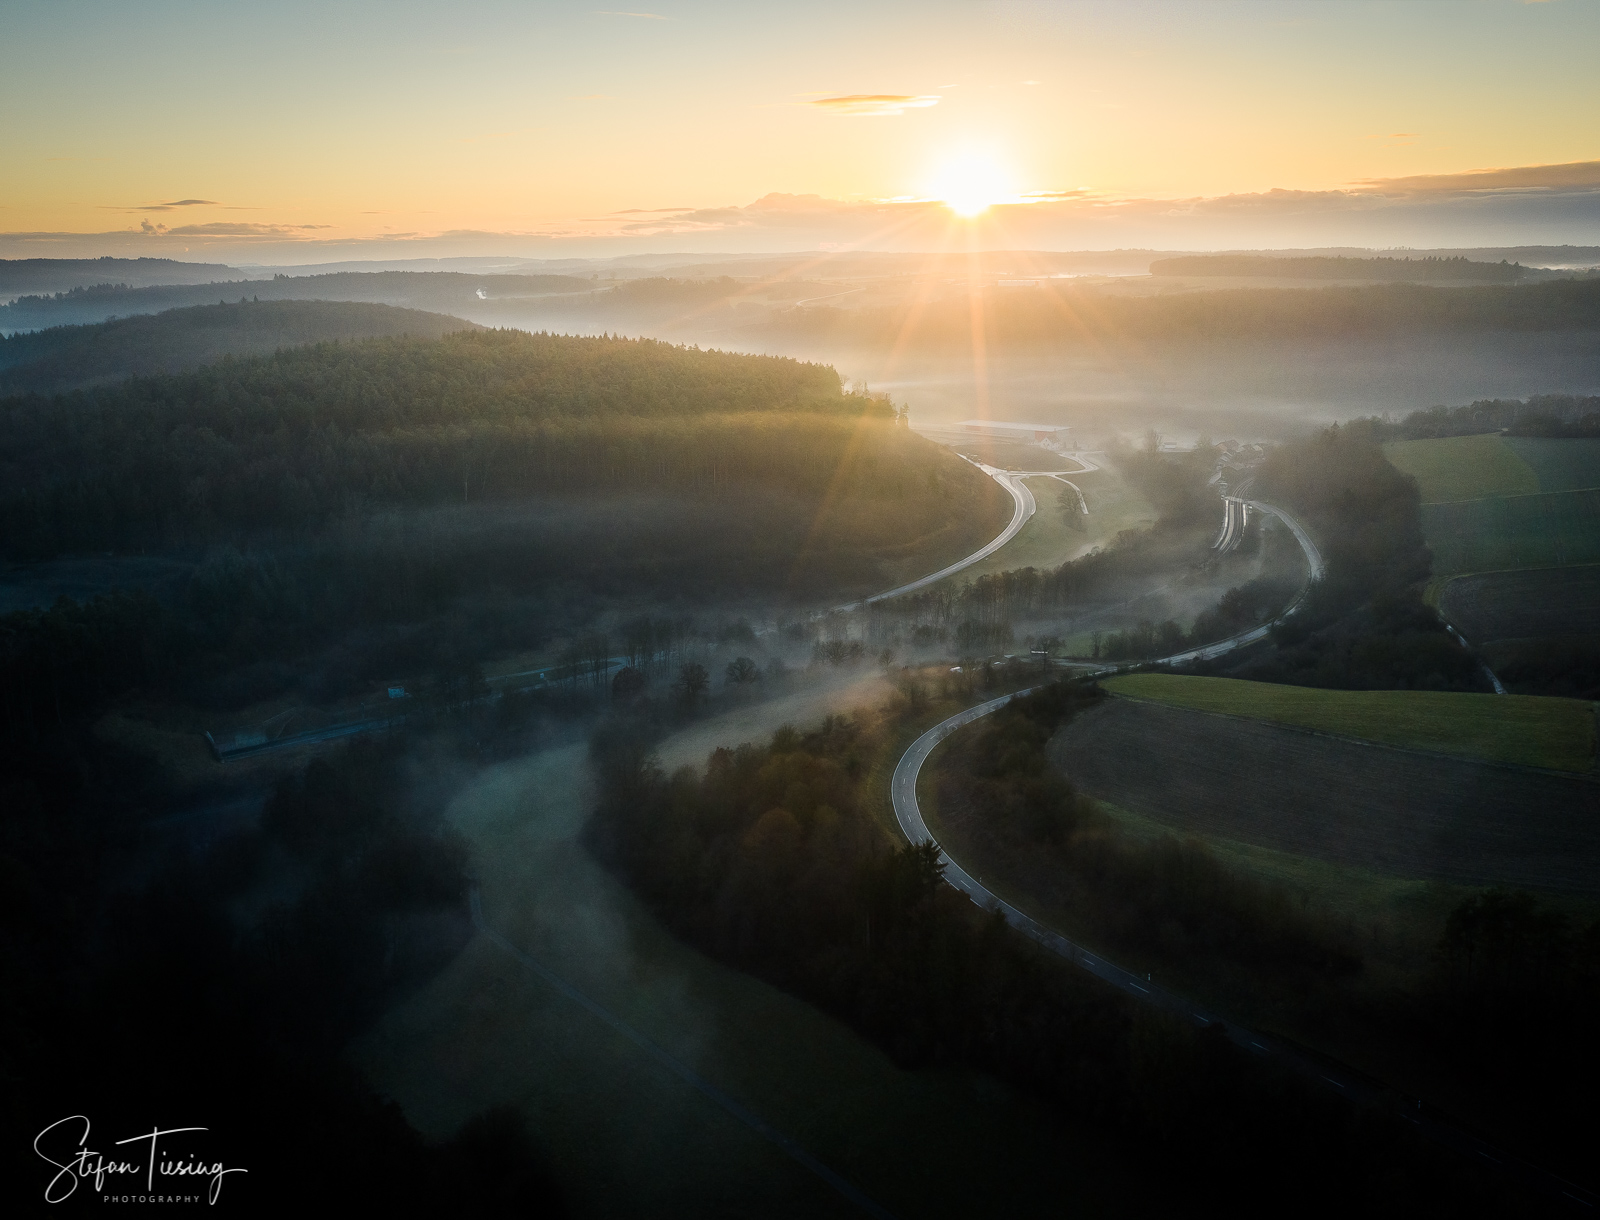 From Hemsbach to Adelsheim, Germany